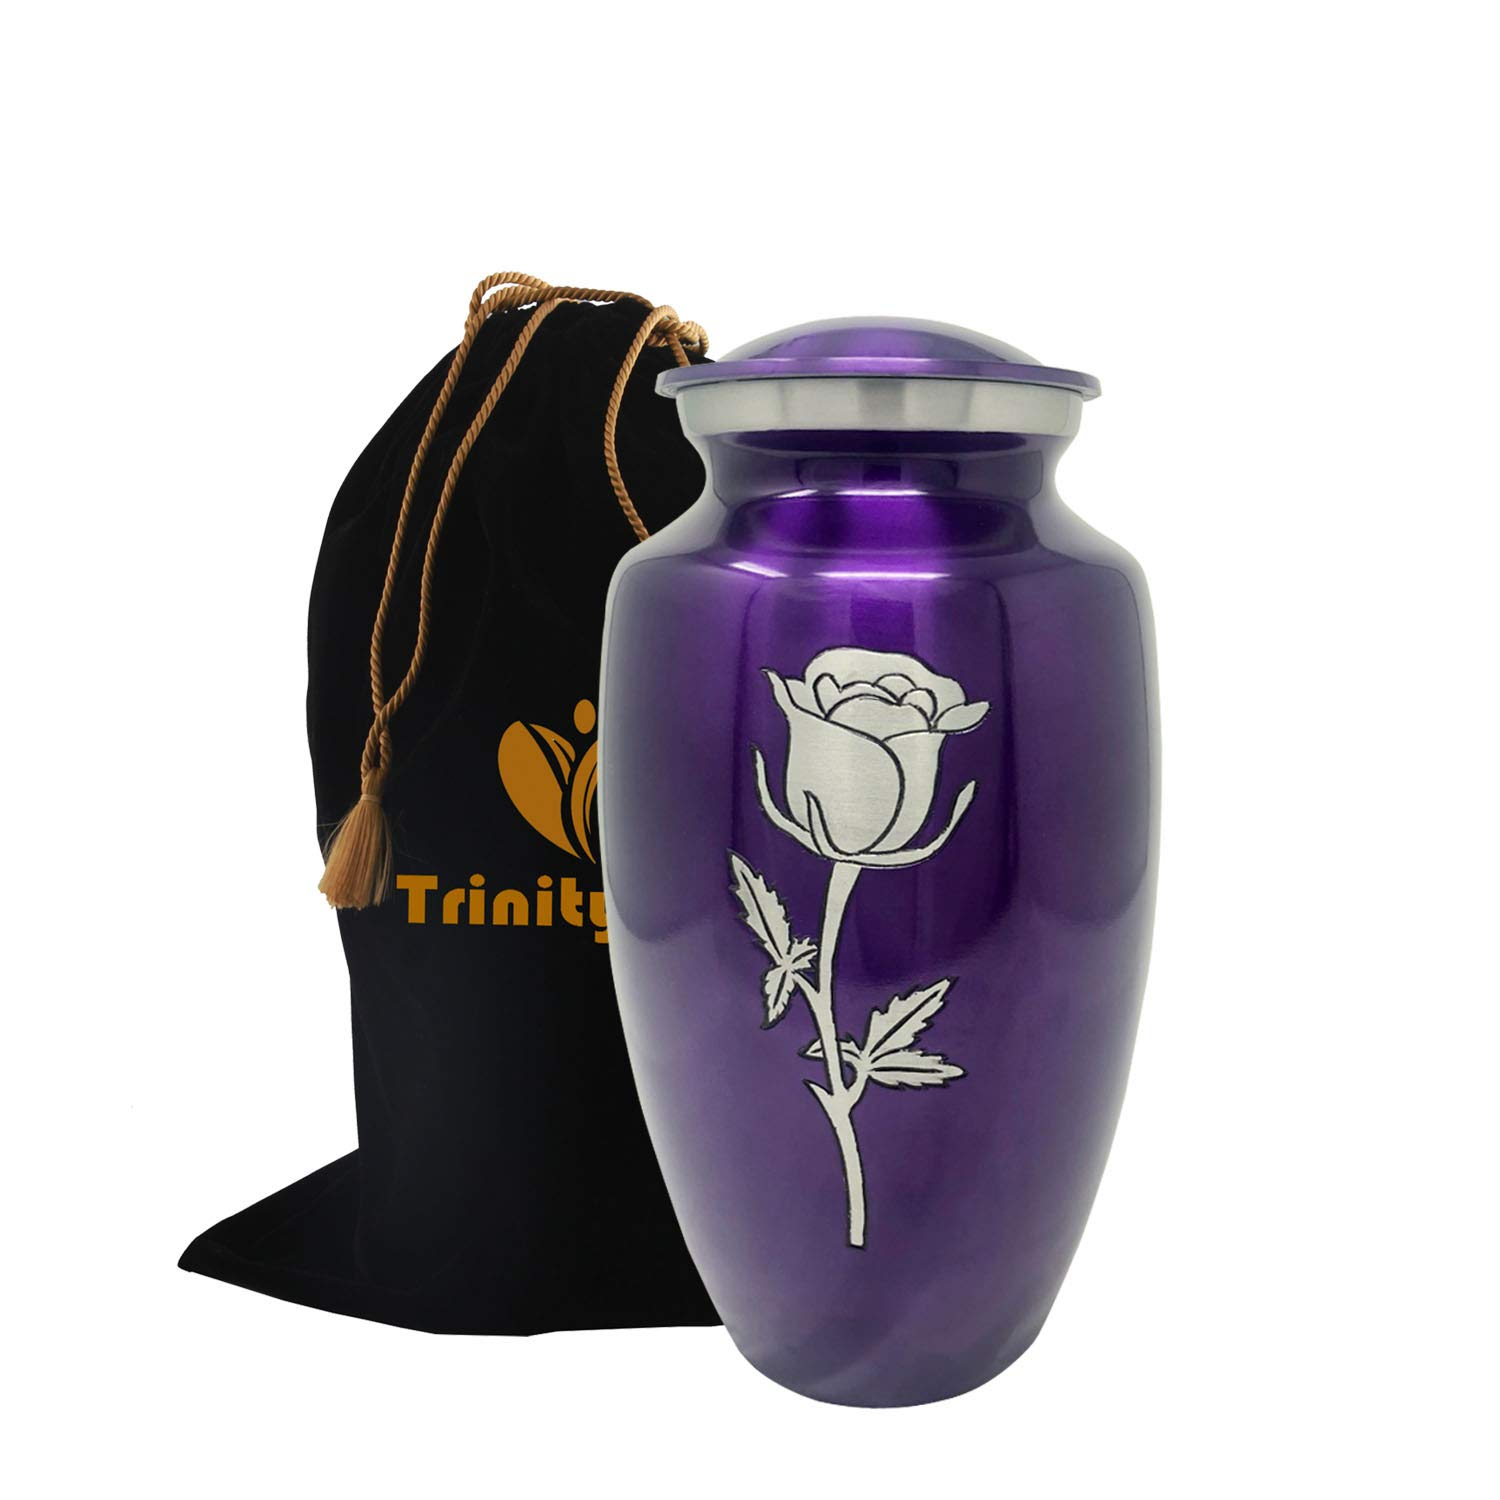 Eternal Rose Cremation Urn - Beautifully Handcrafted Adult Funeral Urn - Solid Metal Urn - Affordable Urn for Human Ashes with Free Velvet Bag (Purple) by Trinityurns